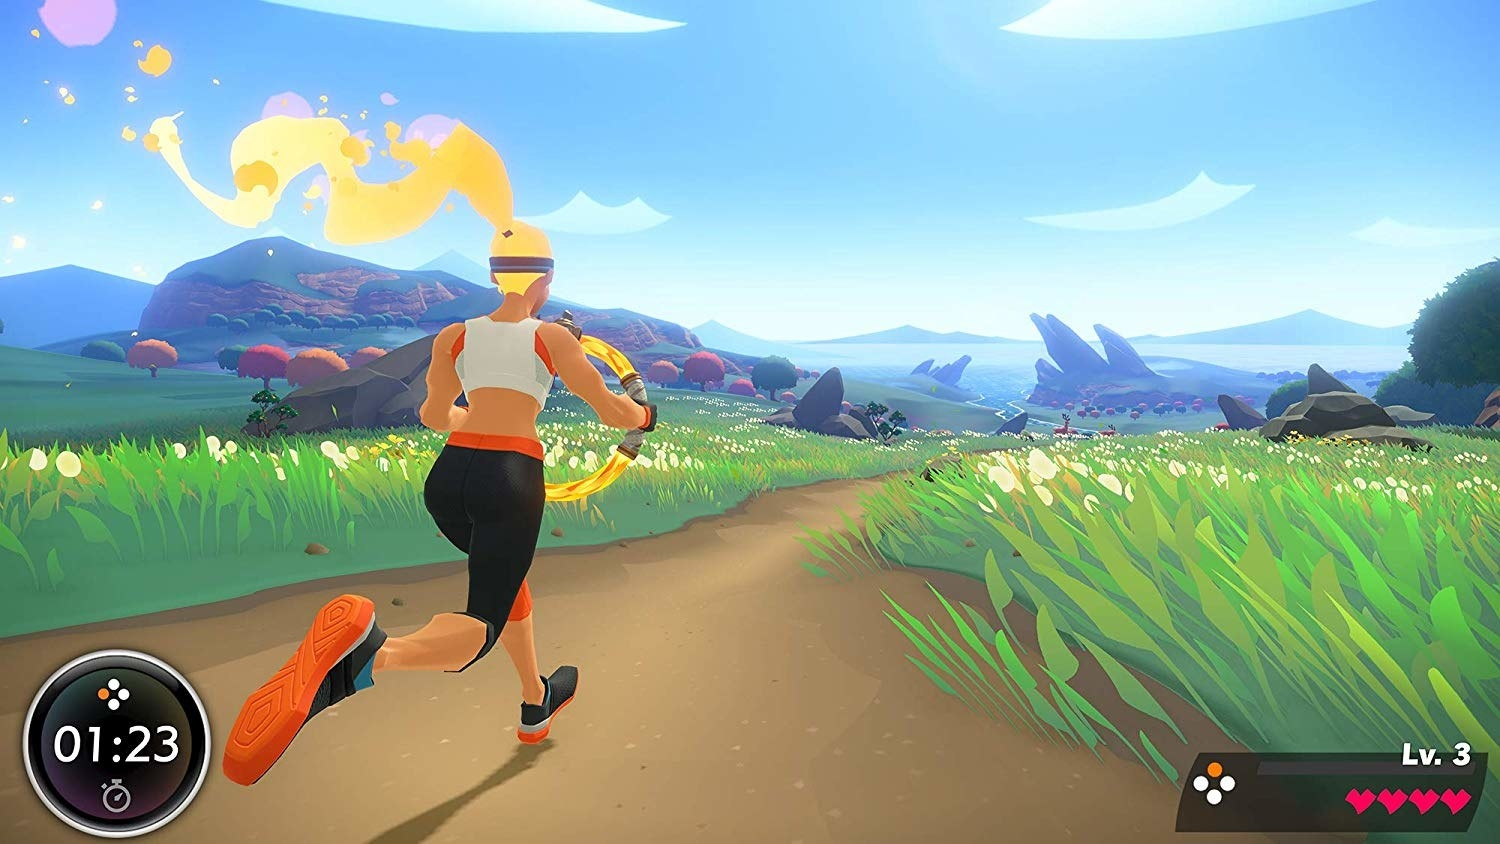 The game's avatar running down a cartoon path